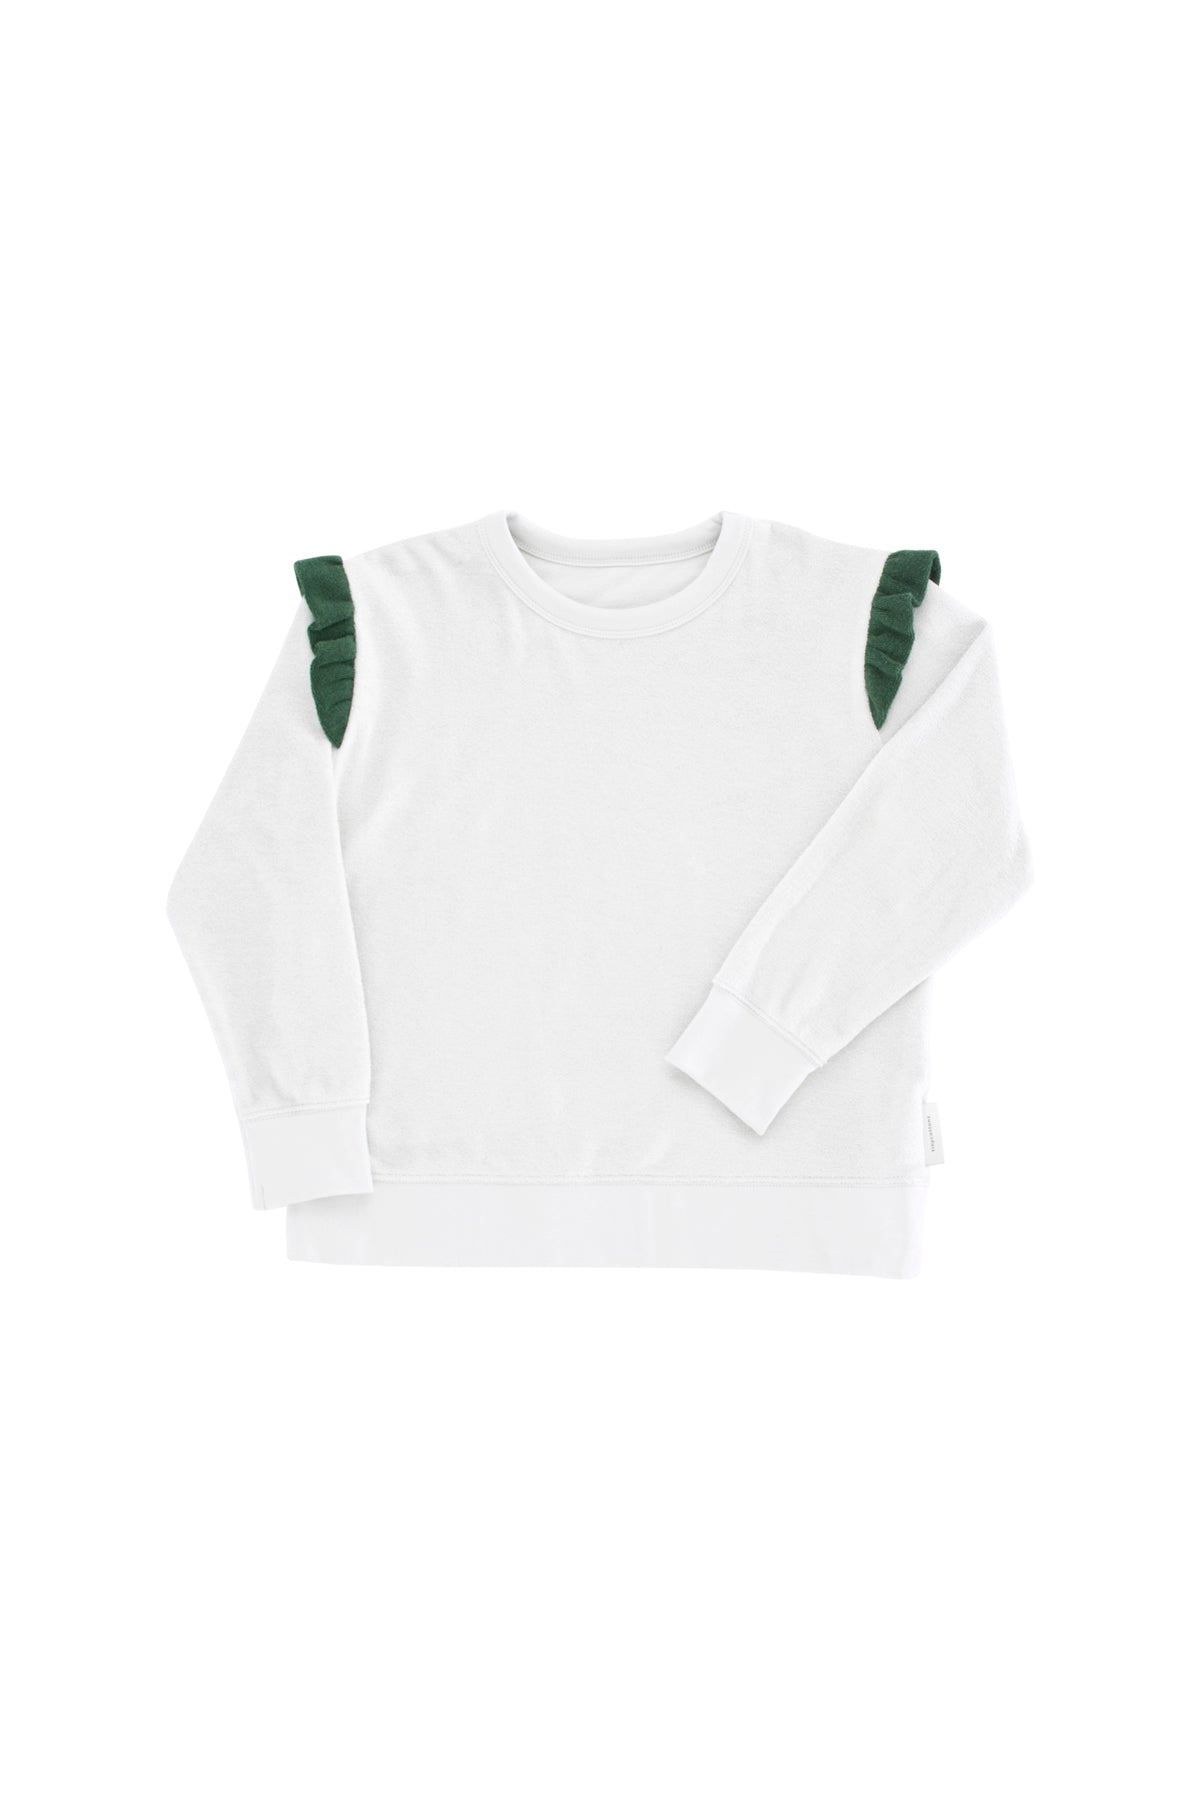 Tiny Cottons Frills Terry Sweatshirt